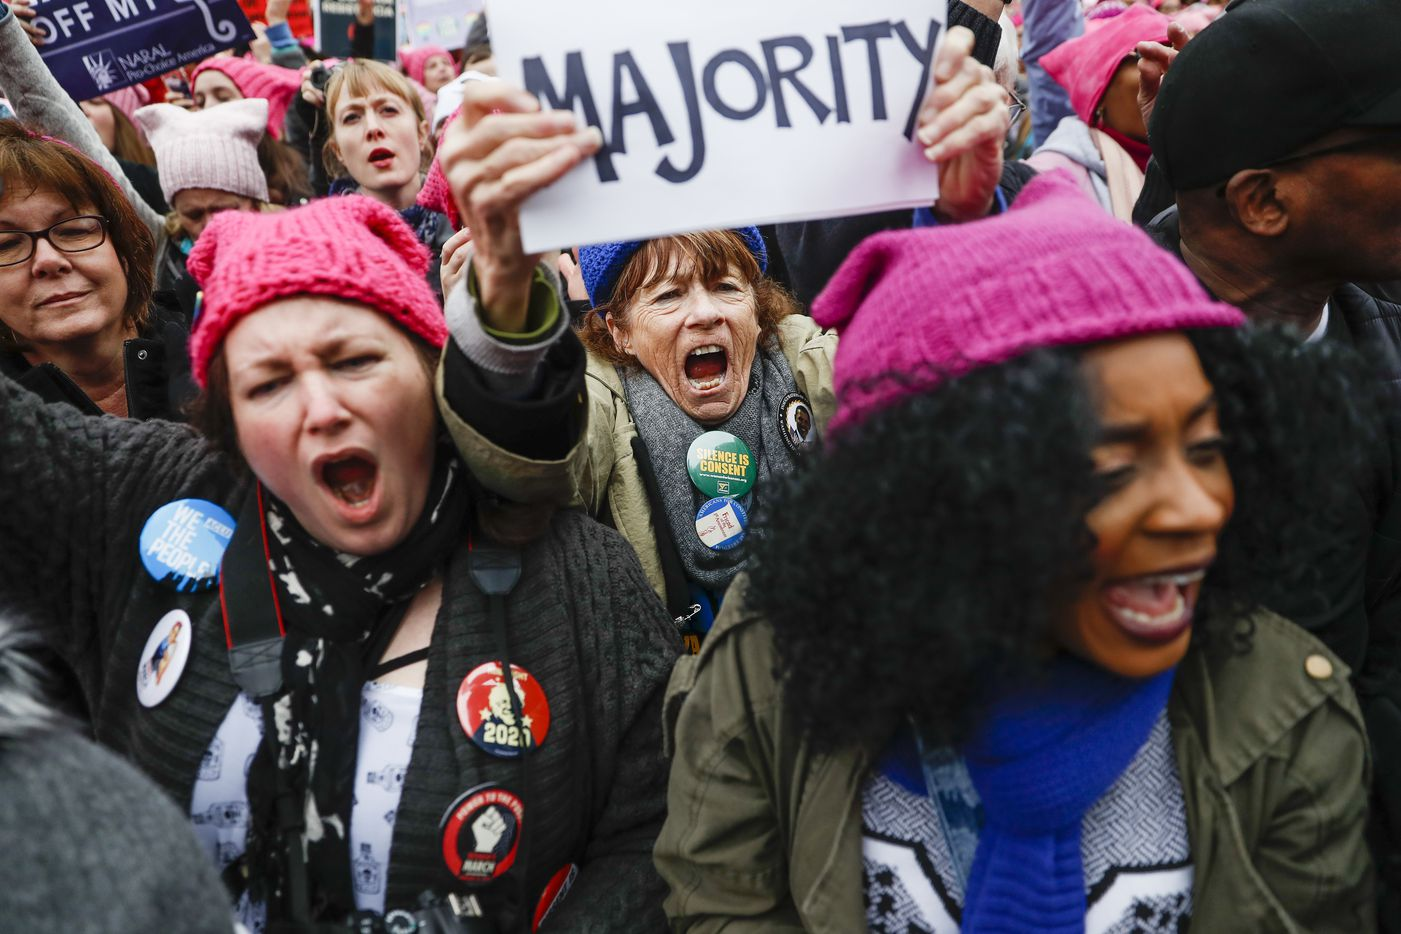 Protesters cheer at the Women's March on Washington during the first full day of Donald Trump's presidency, Saturday, Jan. 21, 2017 in Washington. Organizers of the Women's March on Washington expect more than 200,000 people to attend the gathering. Other protests are expected in other U.S. cities.